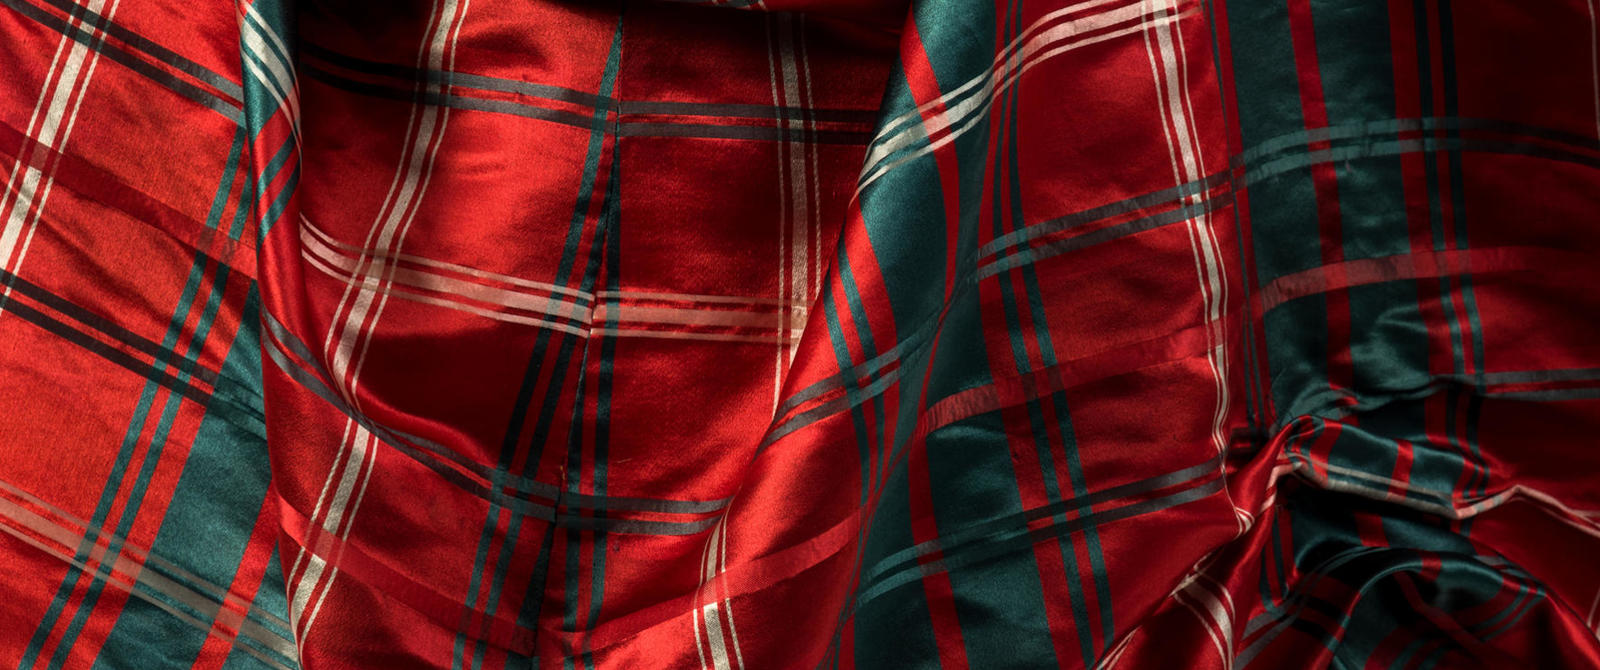 Image: Queen Alexandra's tartan dress